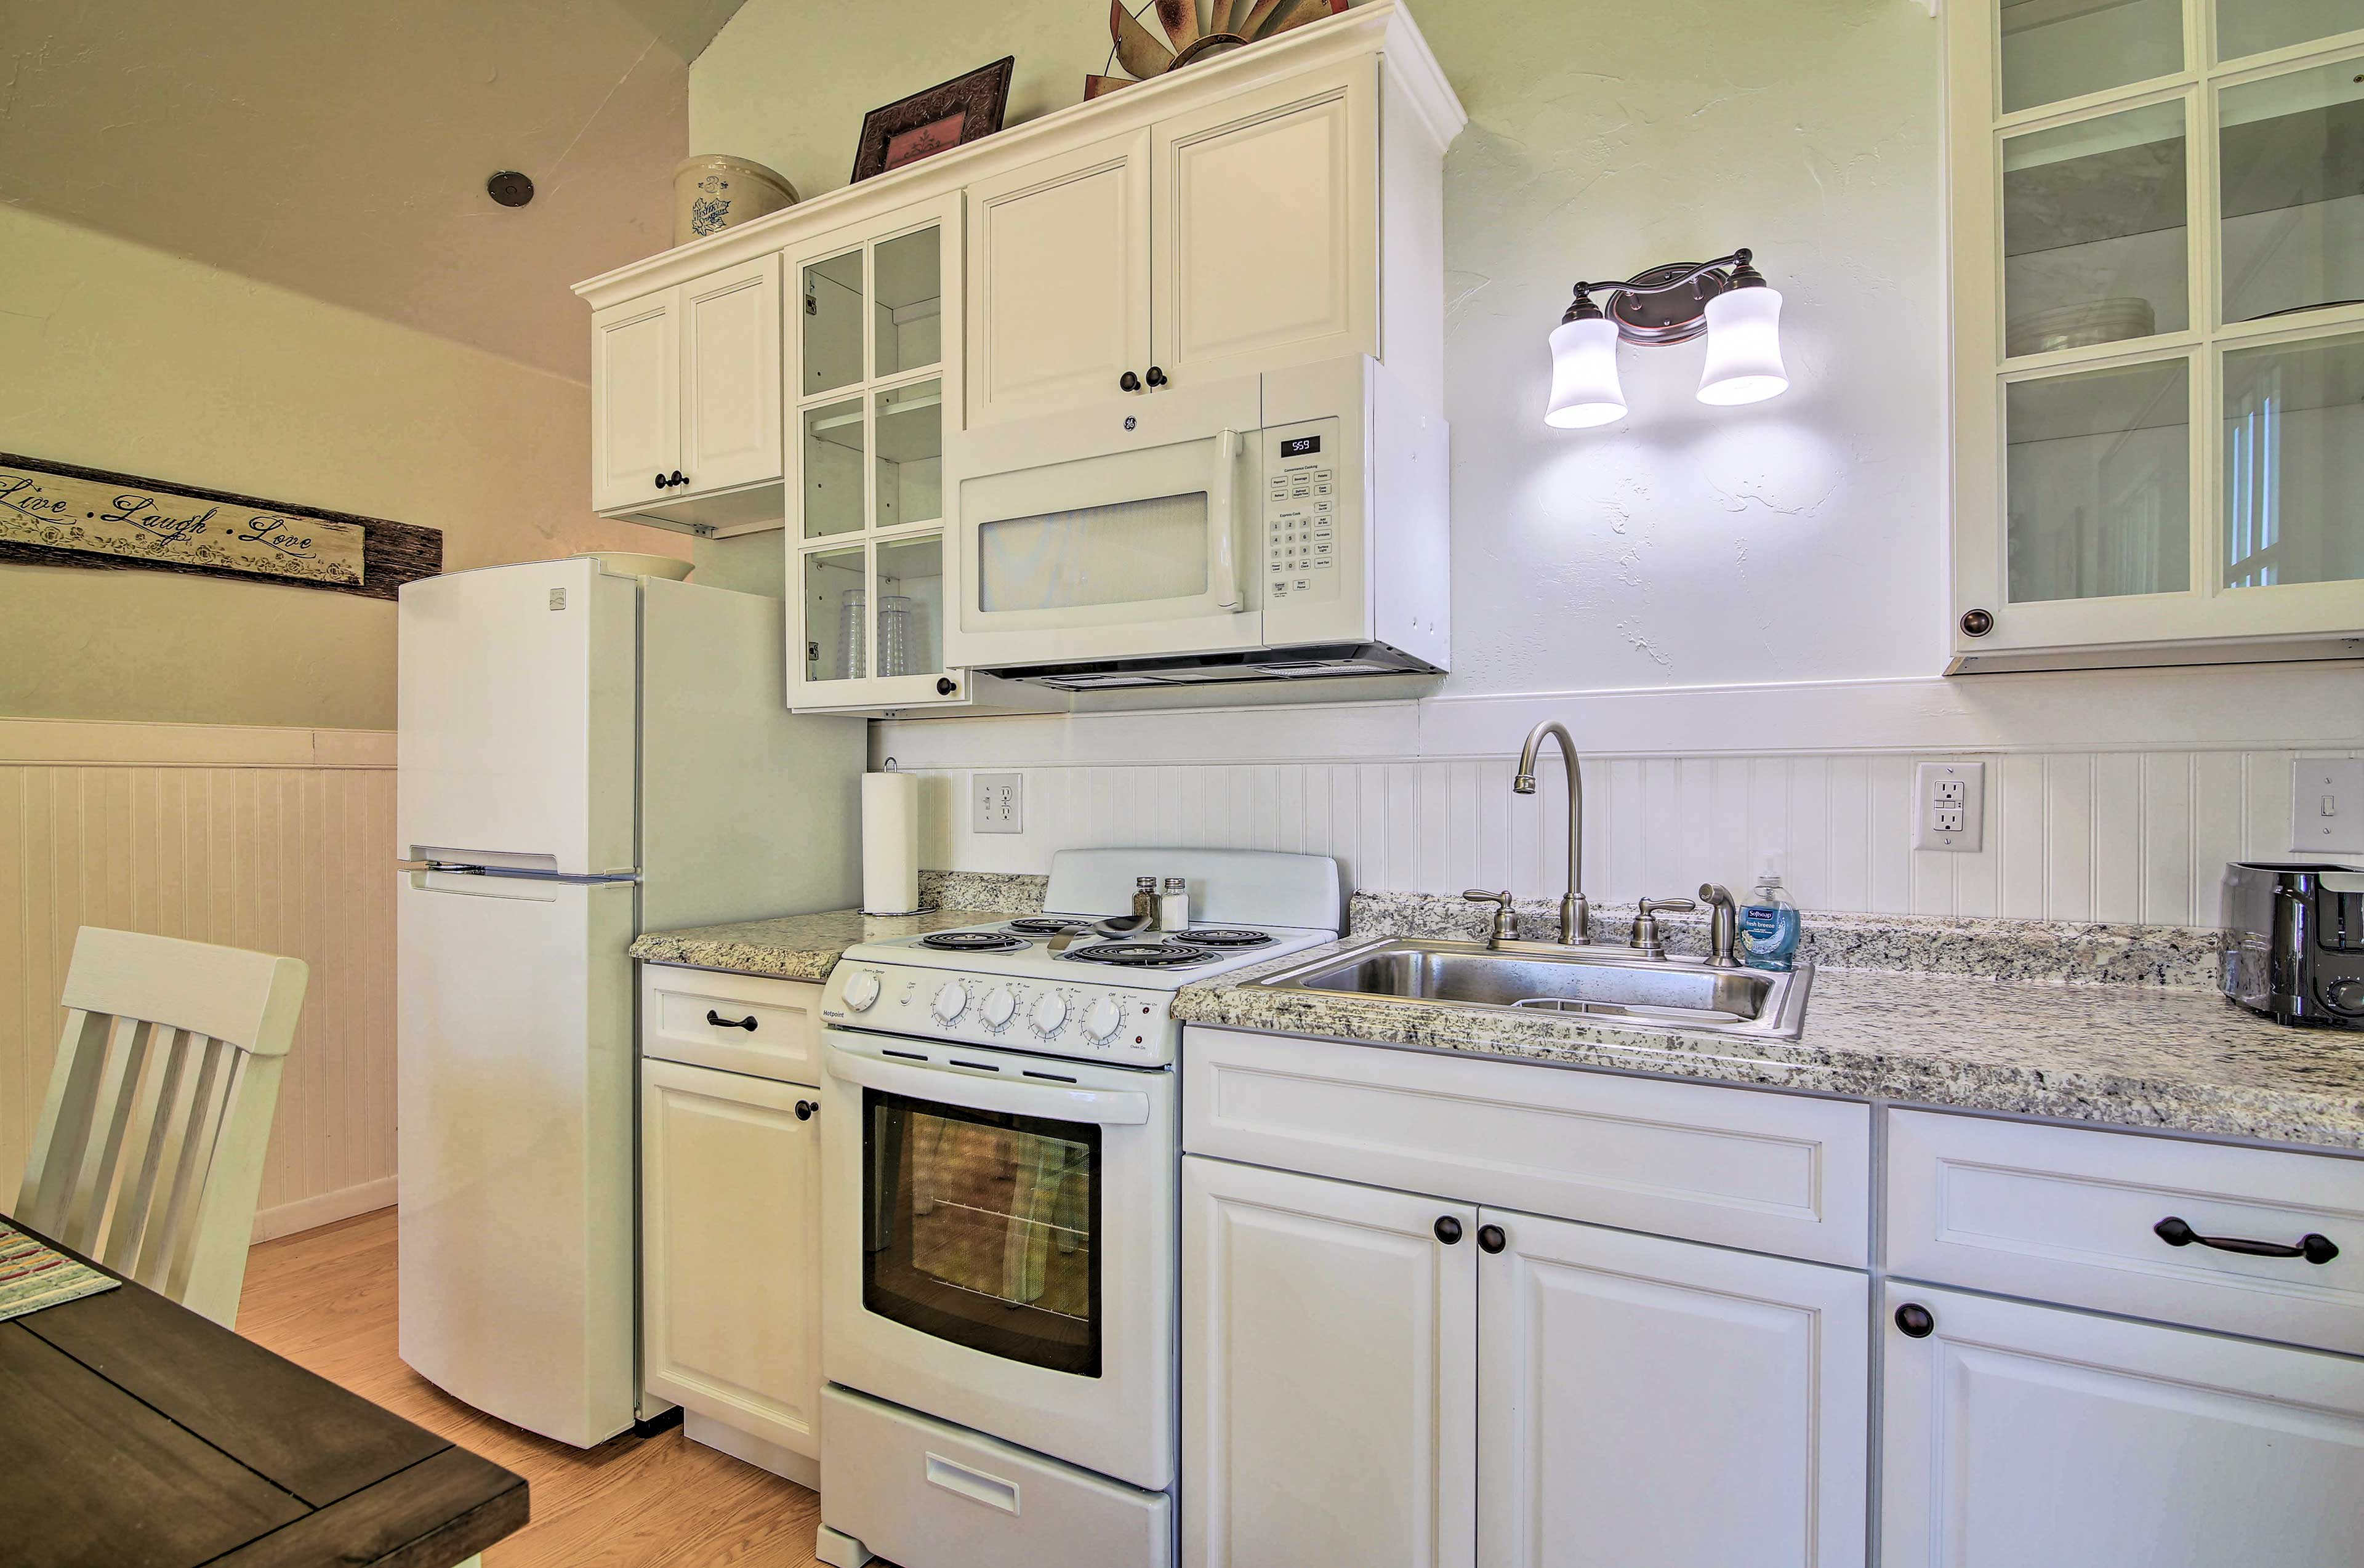 The kitchen offers granite countertops and white cabinetry.